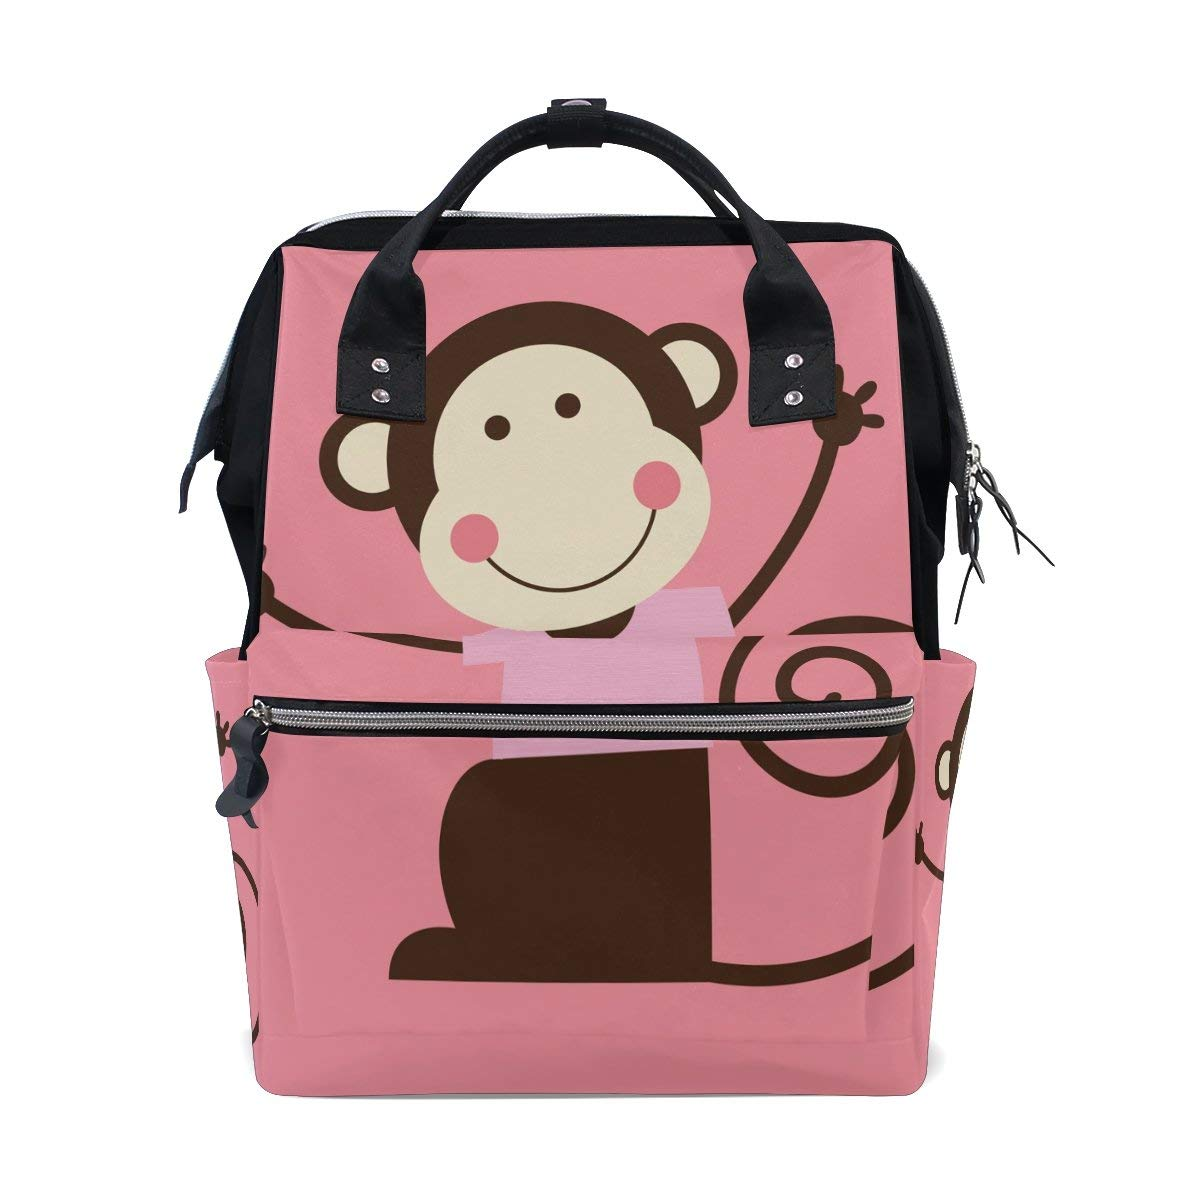 4eb50cff89be Get Quotations · Diaper Bags Backpack Purse Mummy Backpack Fashion Mummy  Maternity Nappy Bag Cool Cute Travel Backpack Laptop